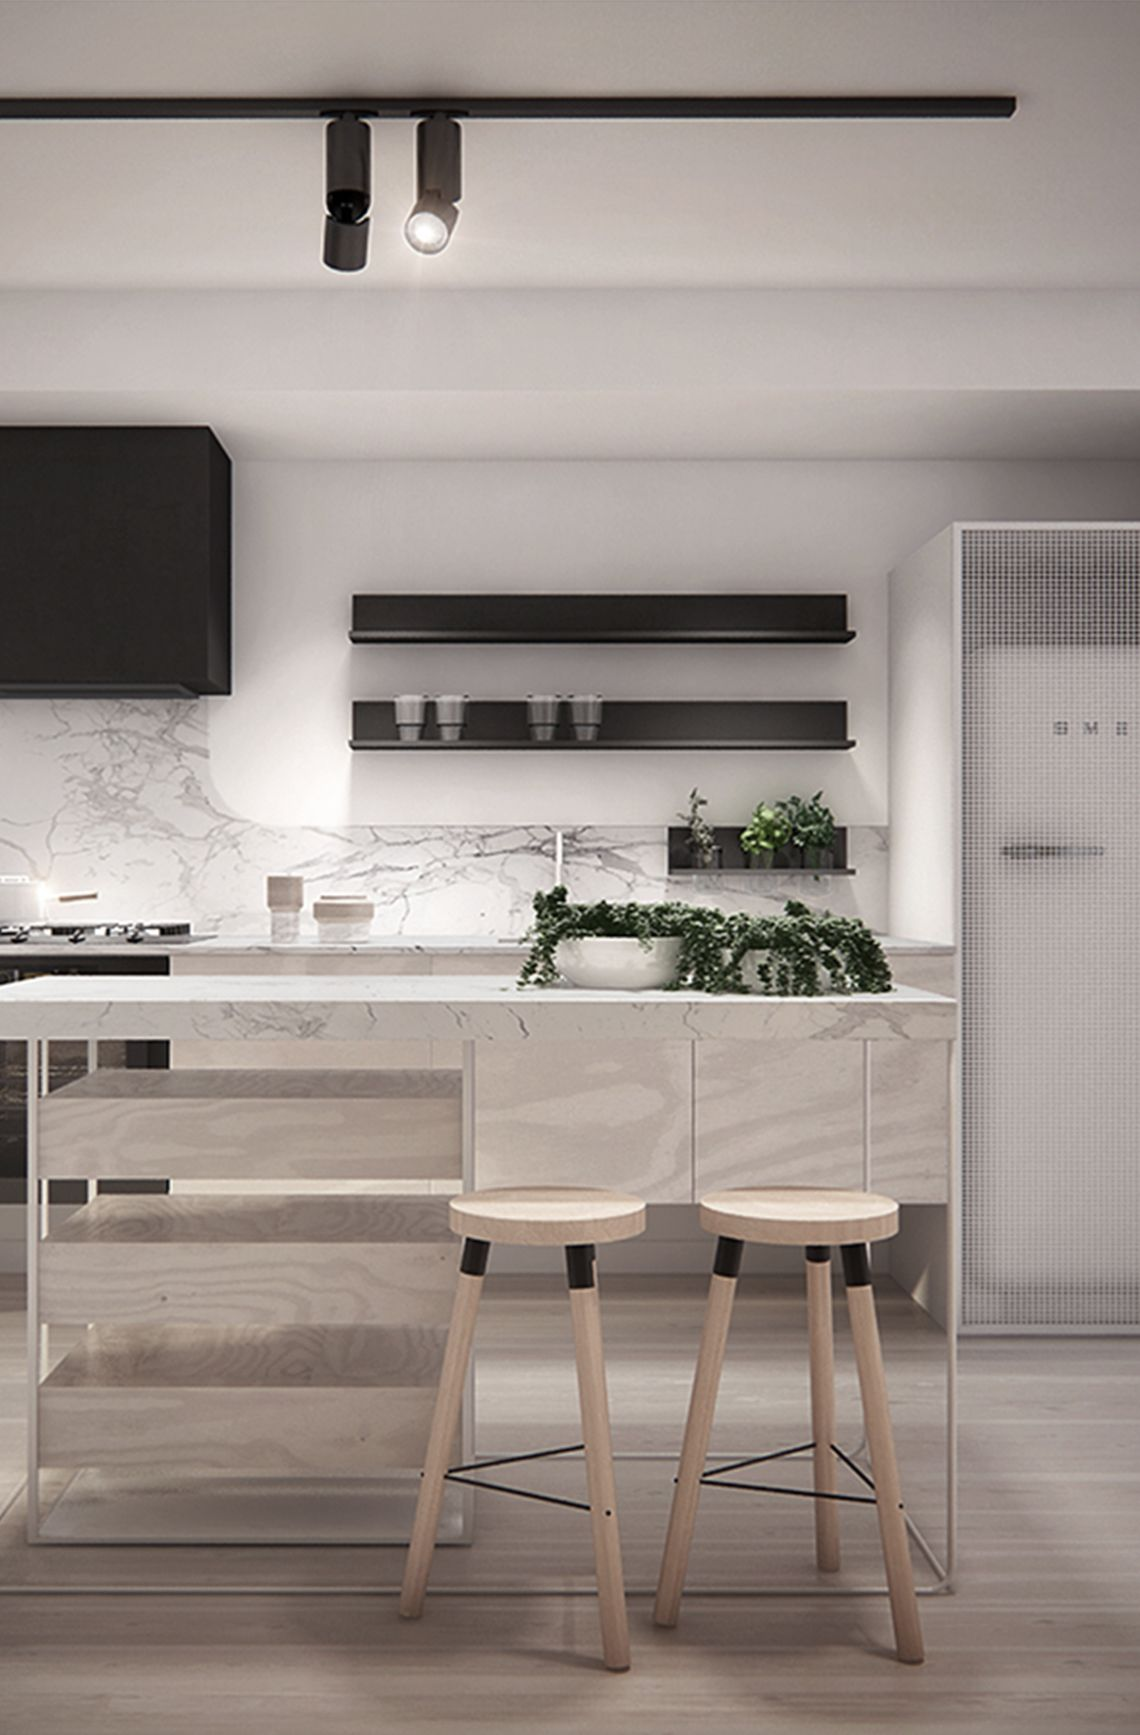 Wohndesign in der küche pale wood kitchen stools marble backsplash black cabinet is that